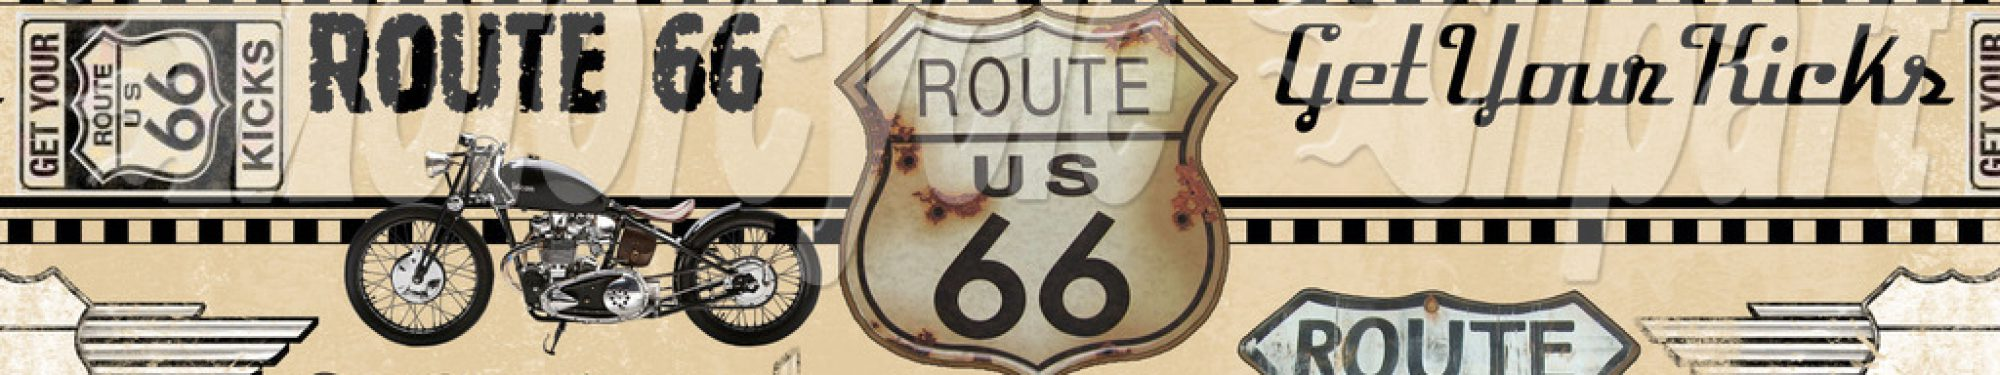 Vegan Route 66